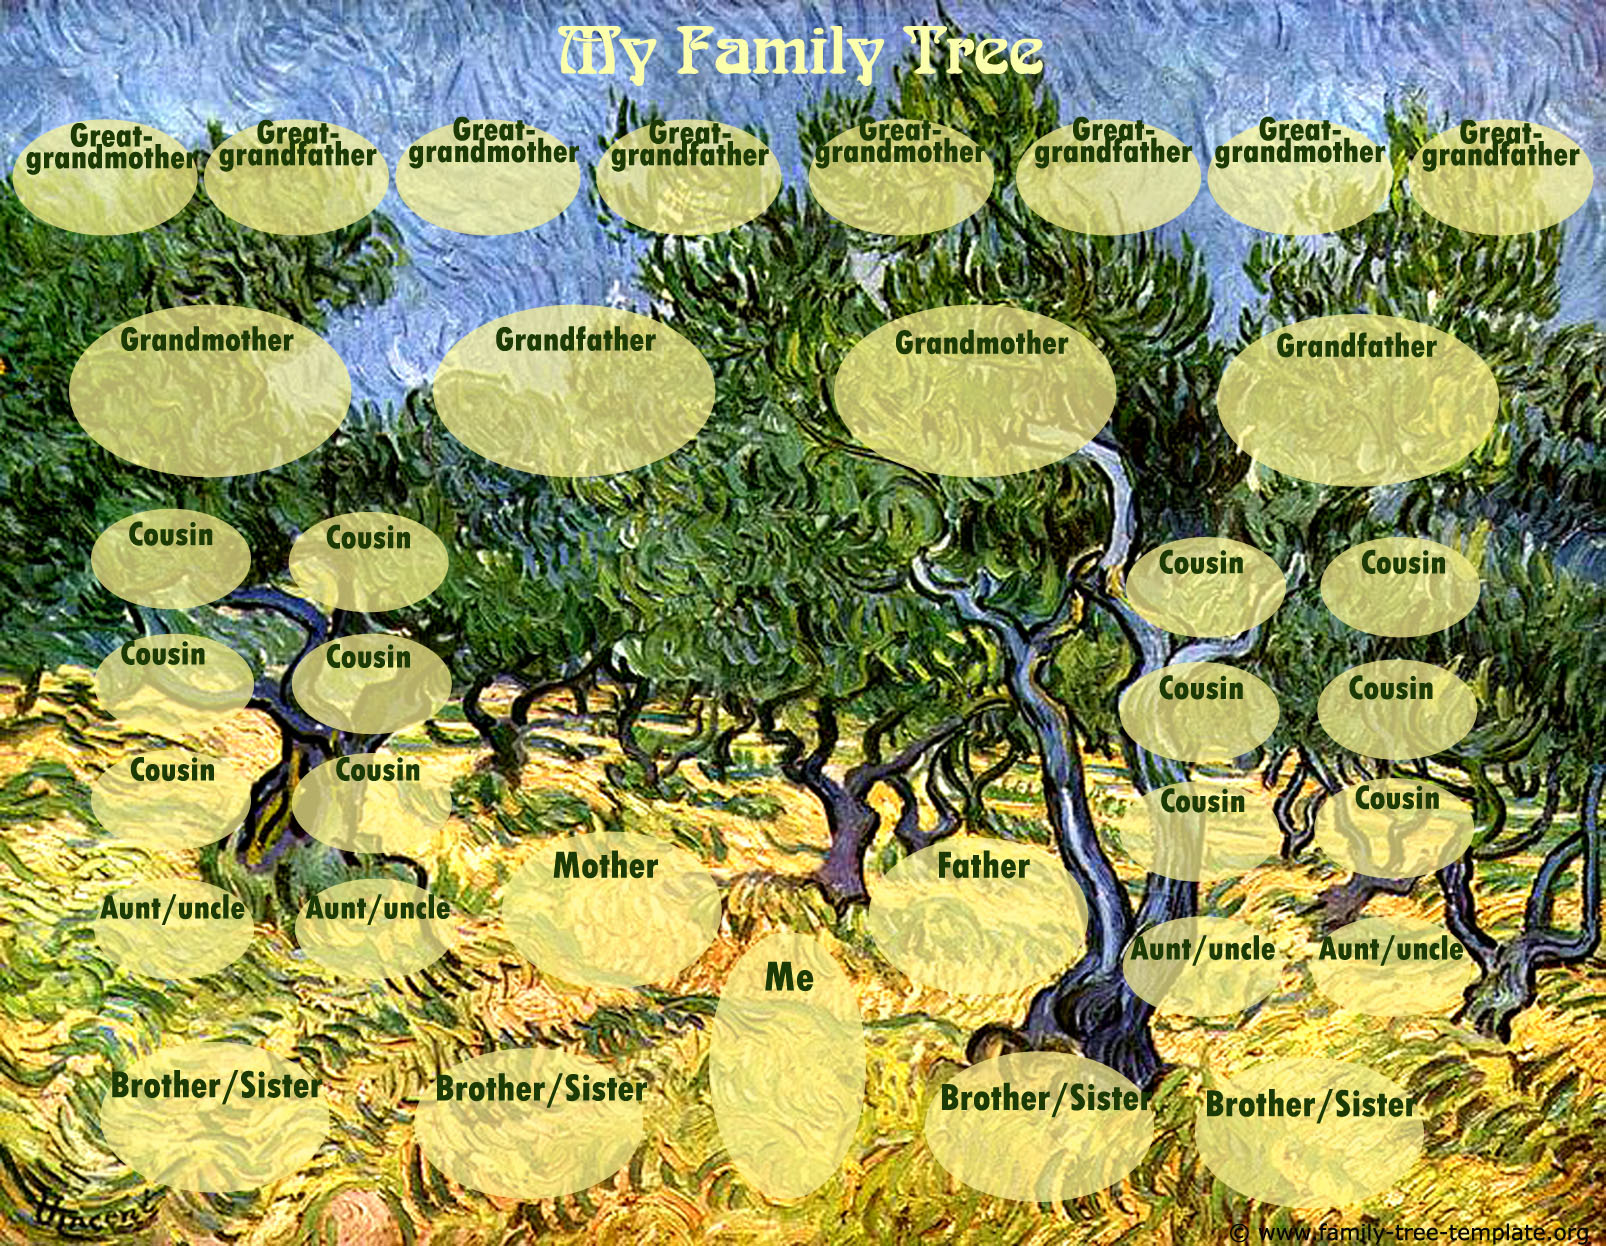 Van Gogh family tree with space for siblings, cousins, aunts and uncles.